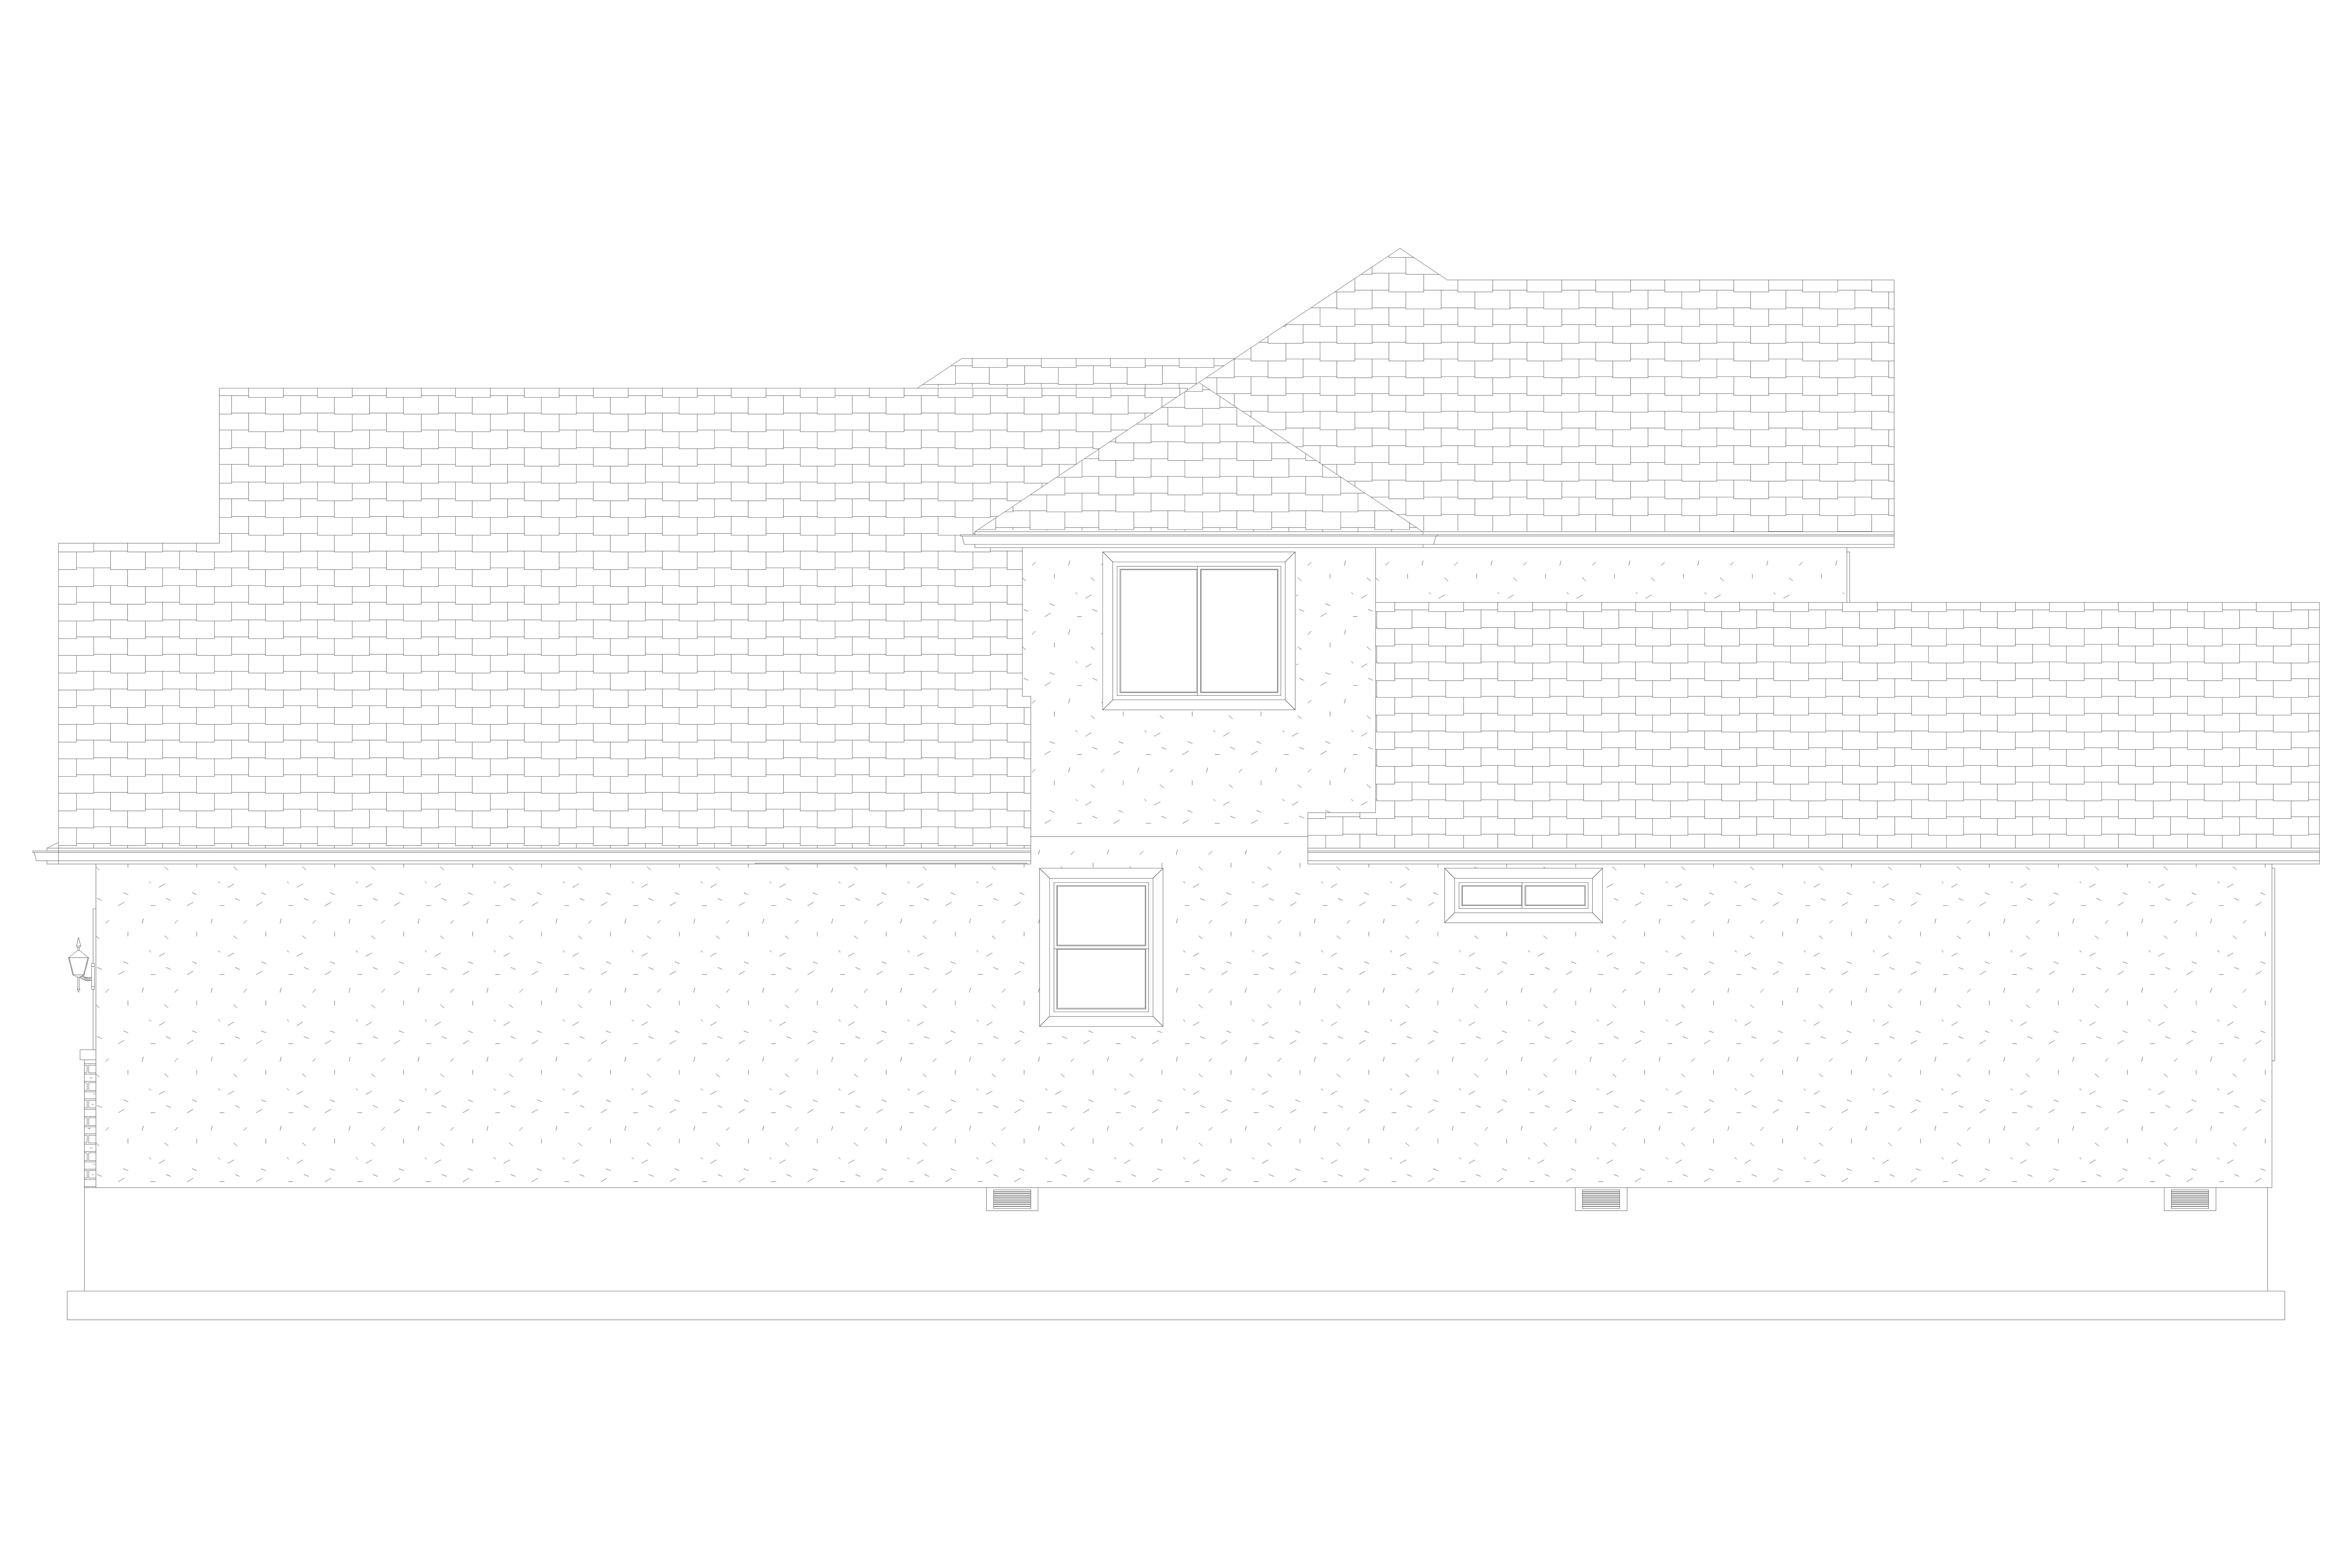 Dream House Plan - Craftsman Exterior - Other Elevation Plan #1060-52